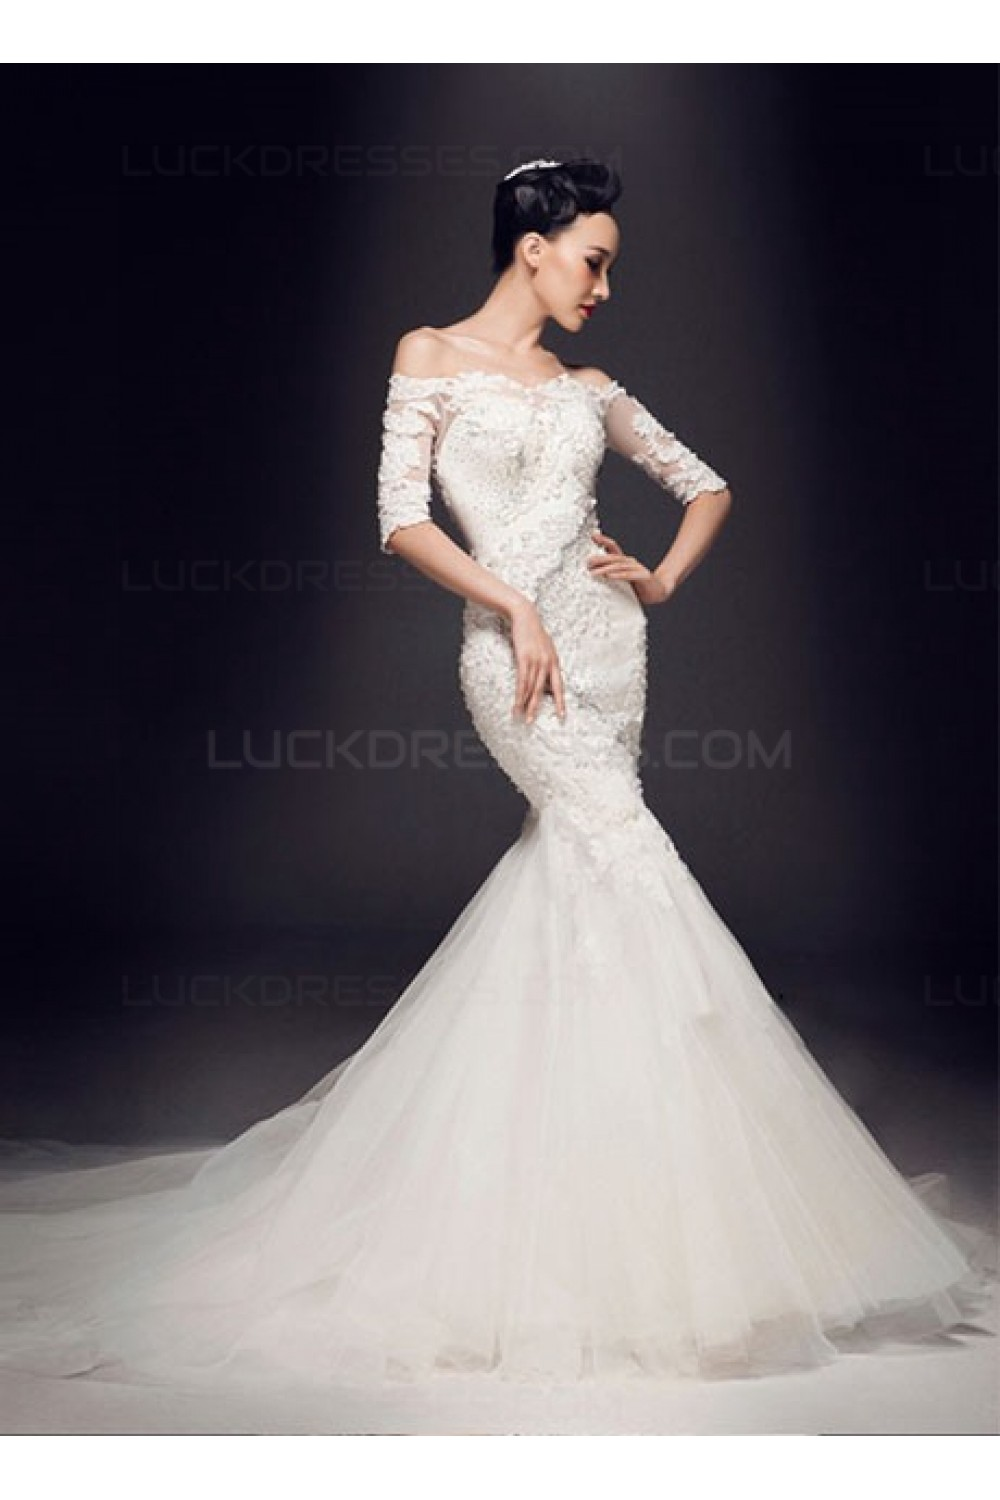 Trumpet/Mermaid Off-the-shoulder Half Sleeve Lace Wedding Dress